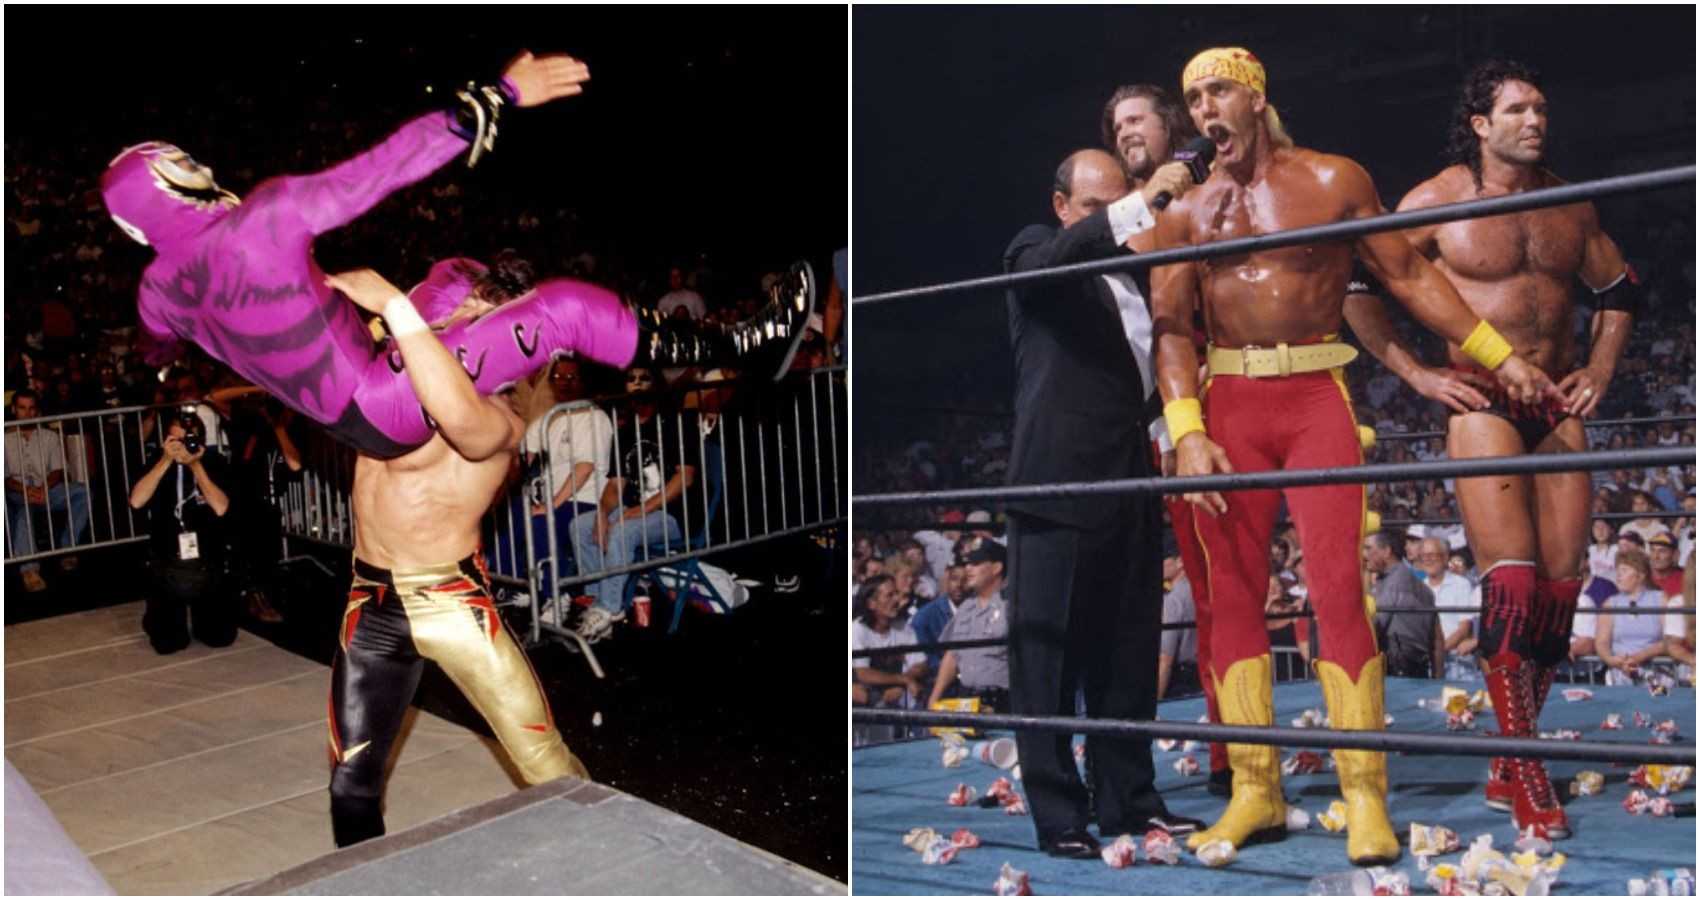 The 10 Best WCW PPV Events In History, According To Cagematch.net